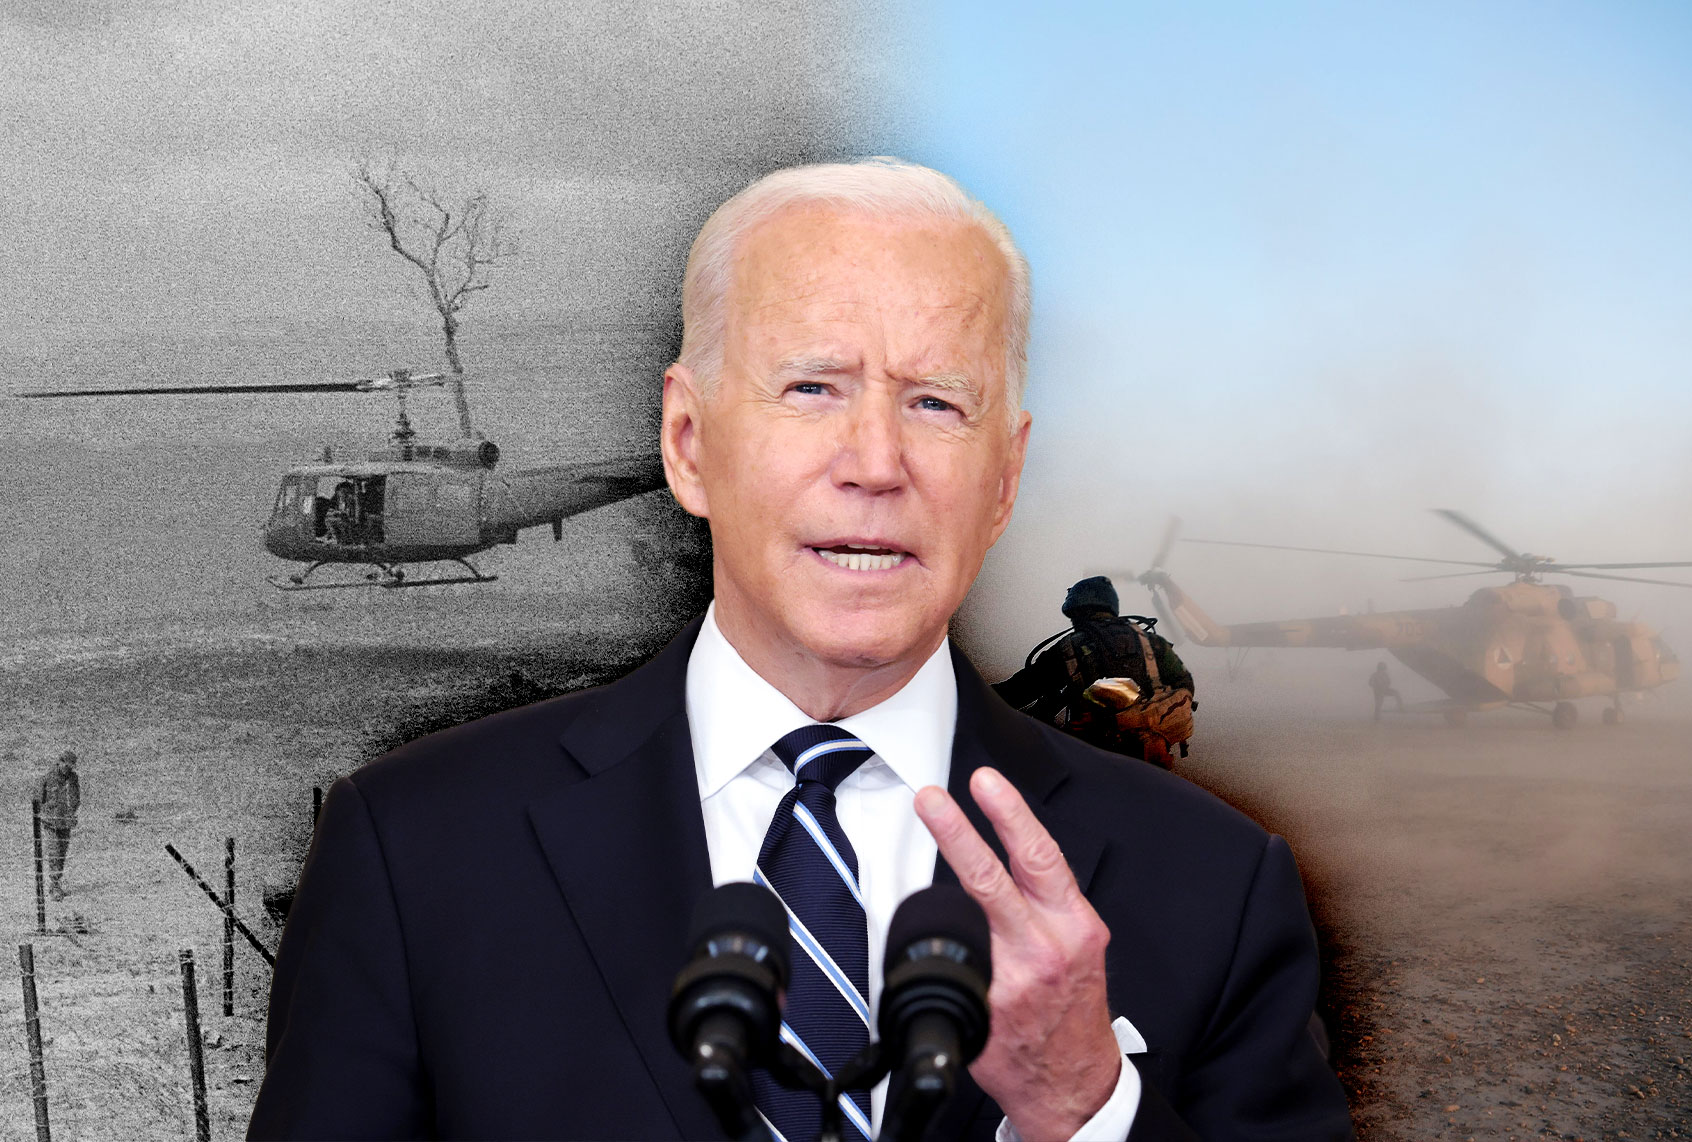 When foreign policy goes south: Biden, Afghanistan and the lessons of history thumbnail